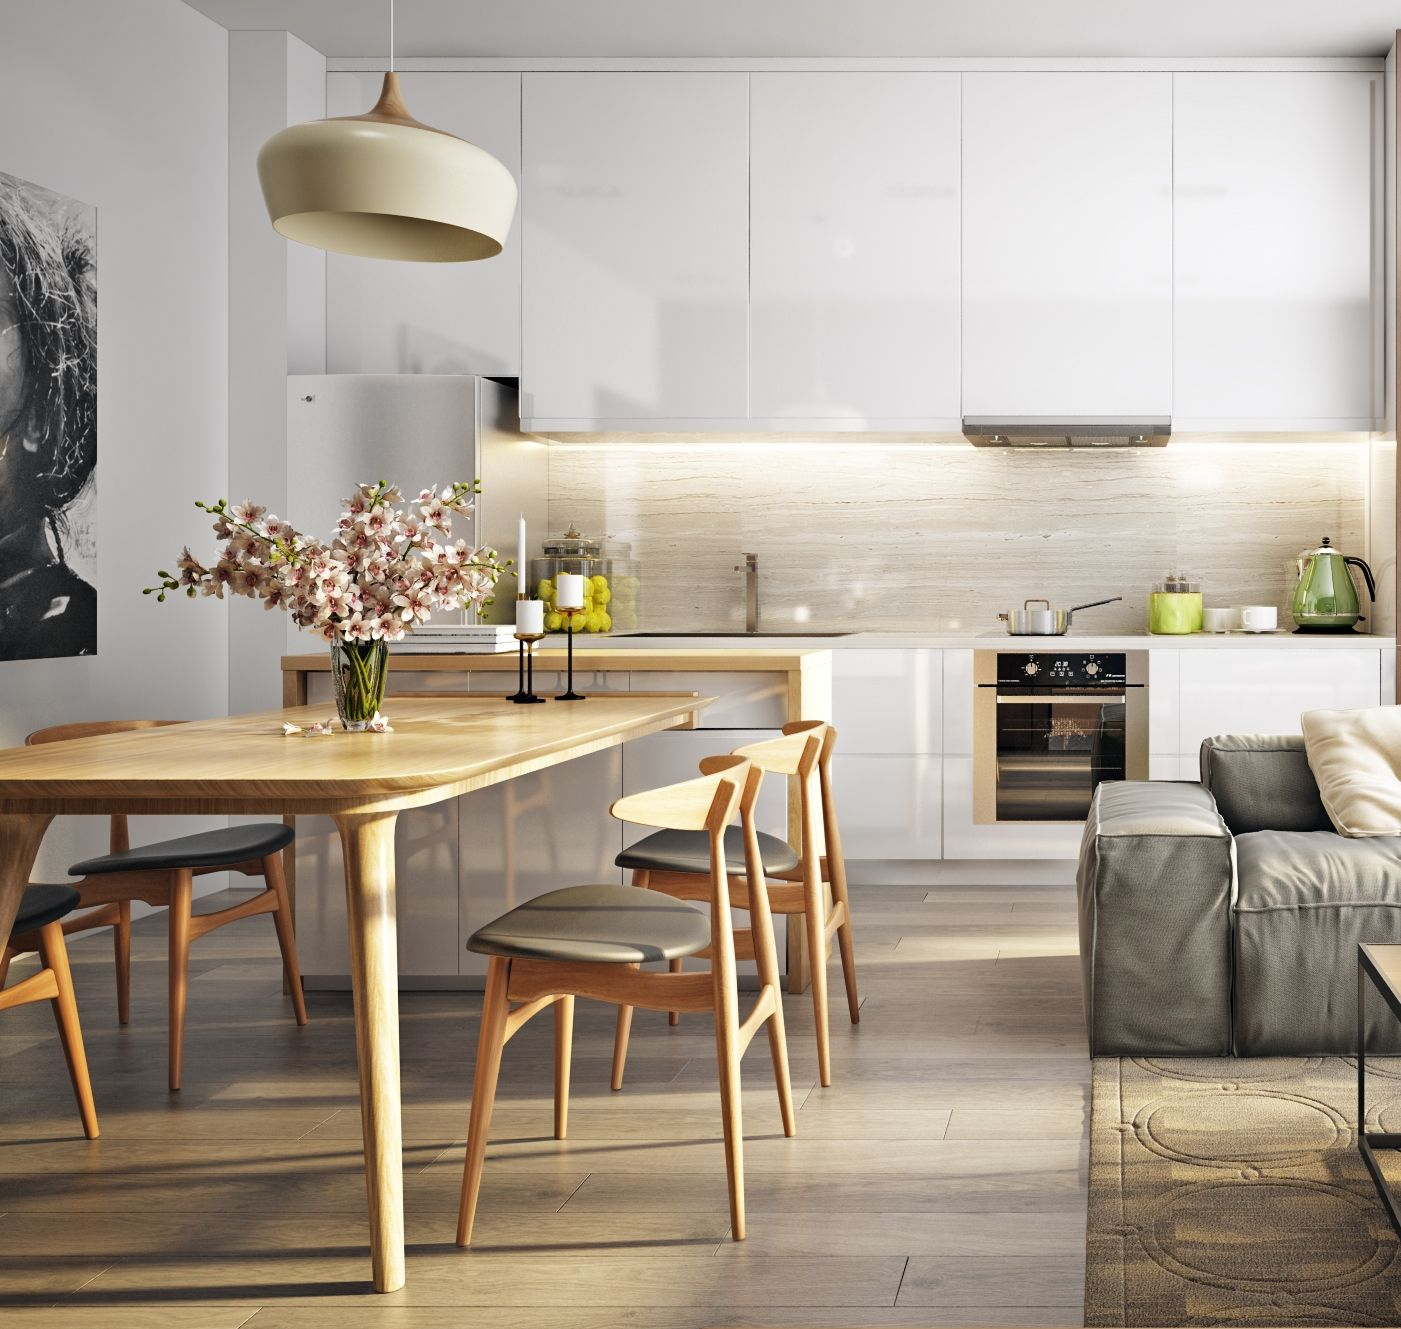 small apartment interior small apartment interior kitchen inspirations on kitchen interior small space id=91247